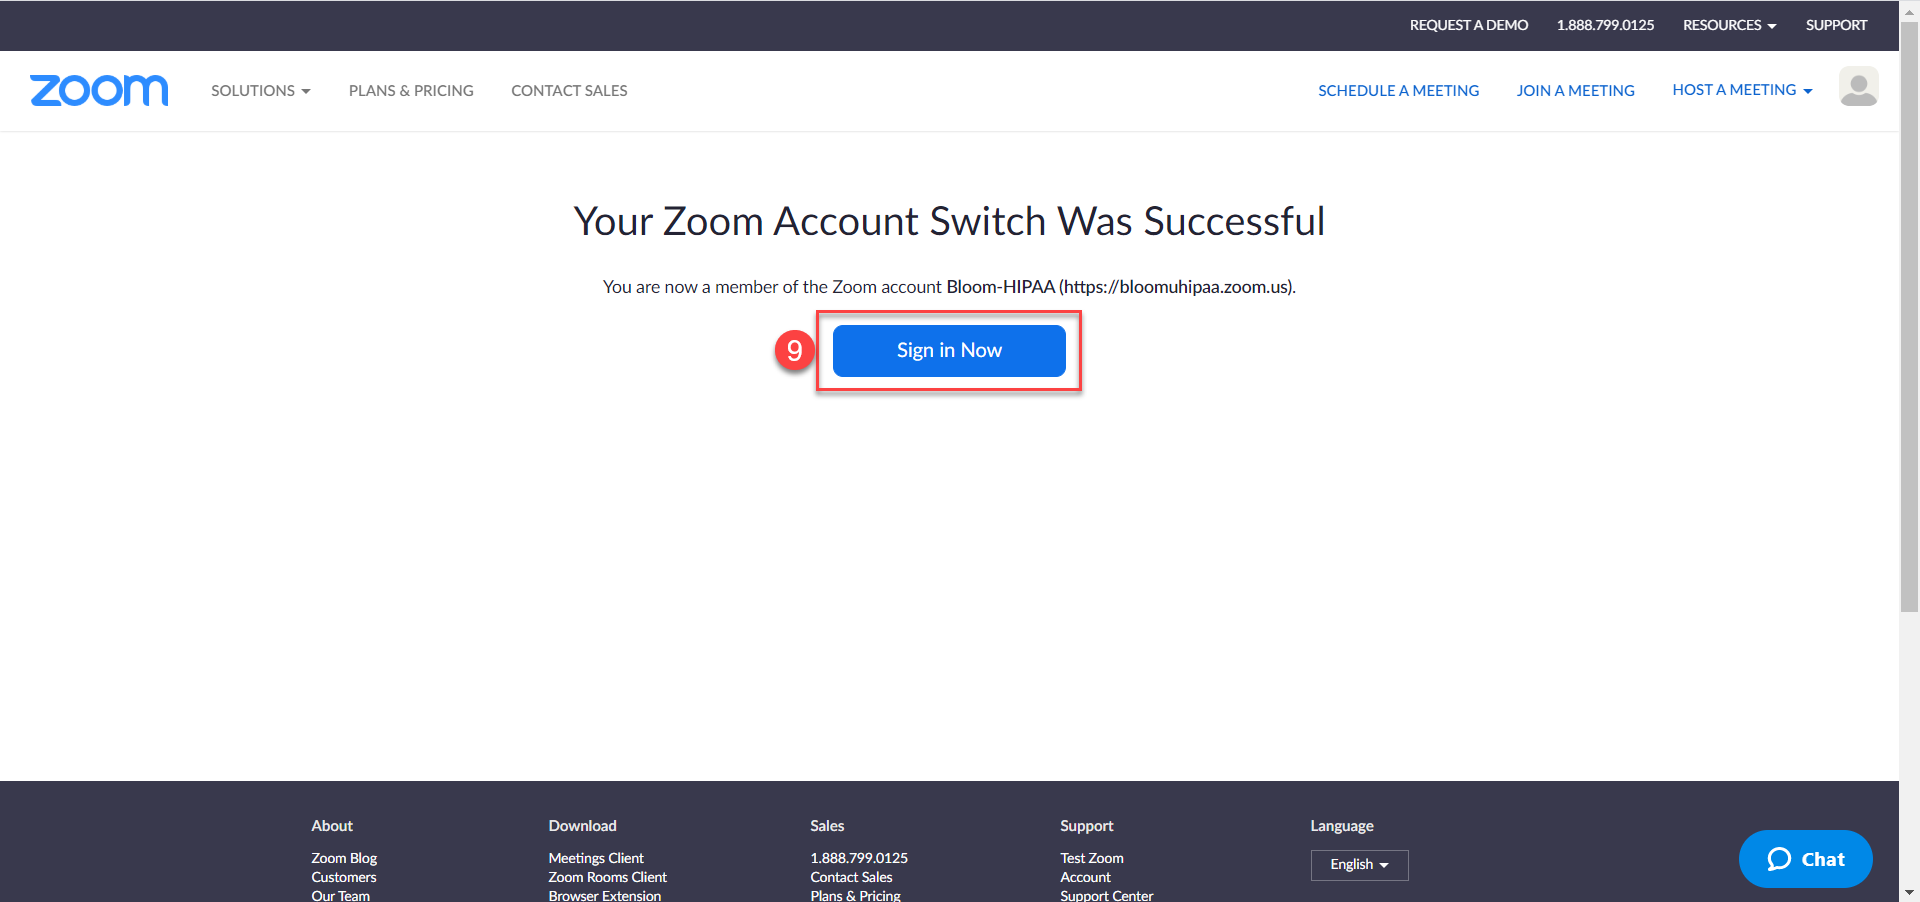 Successful Zoom account switch page with option to sign-in now.